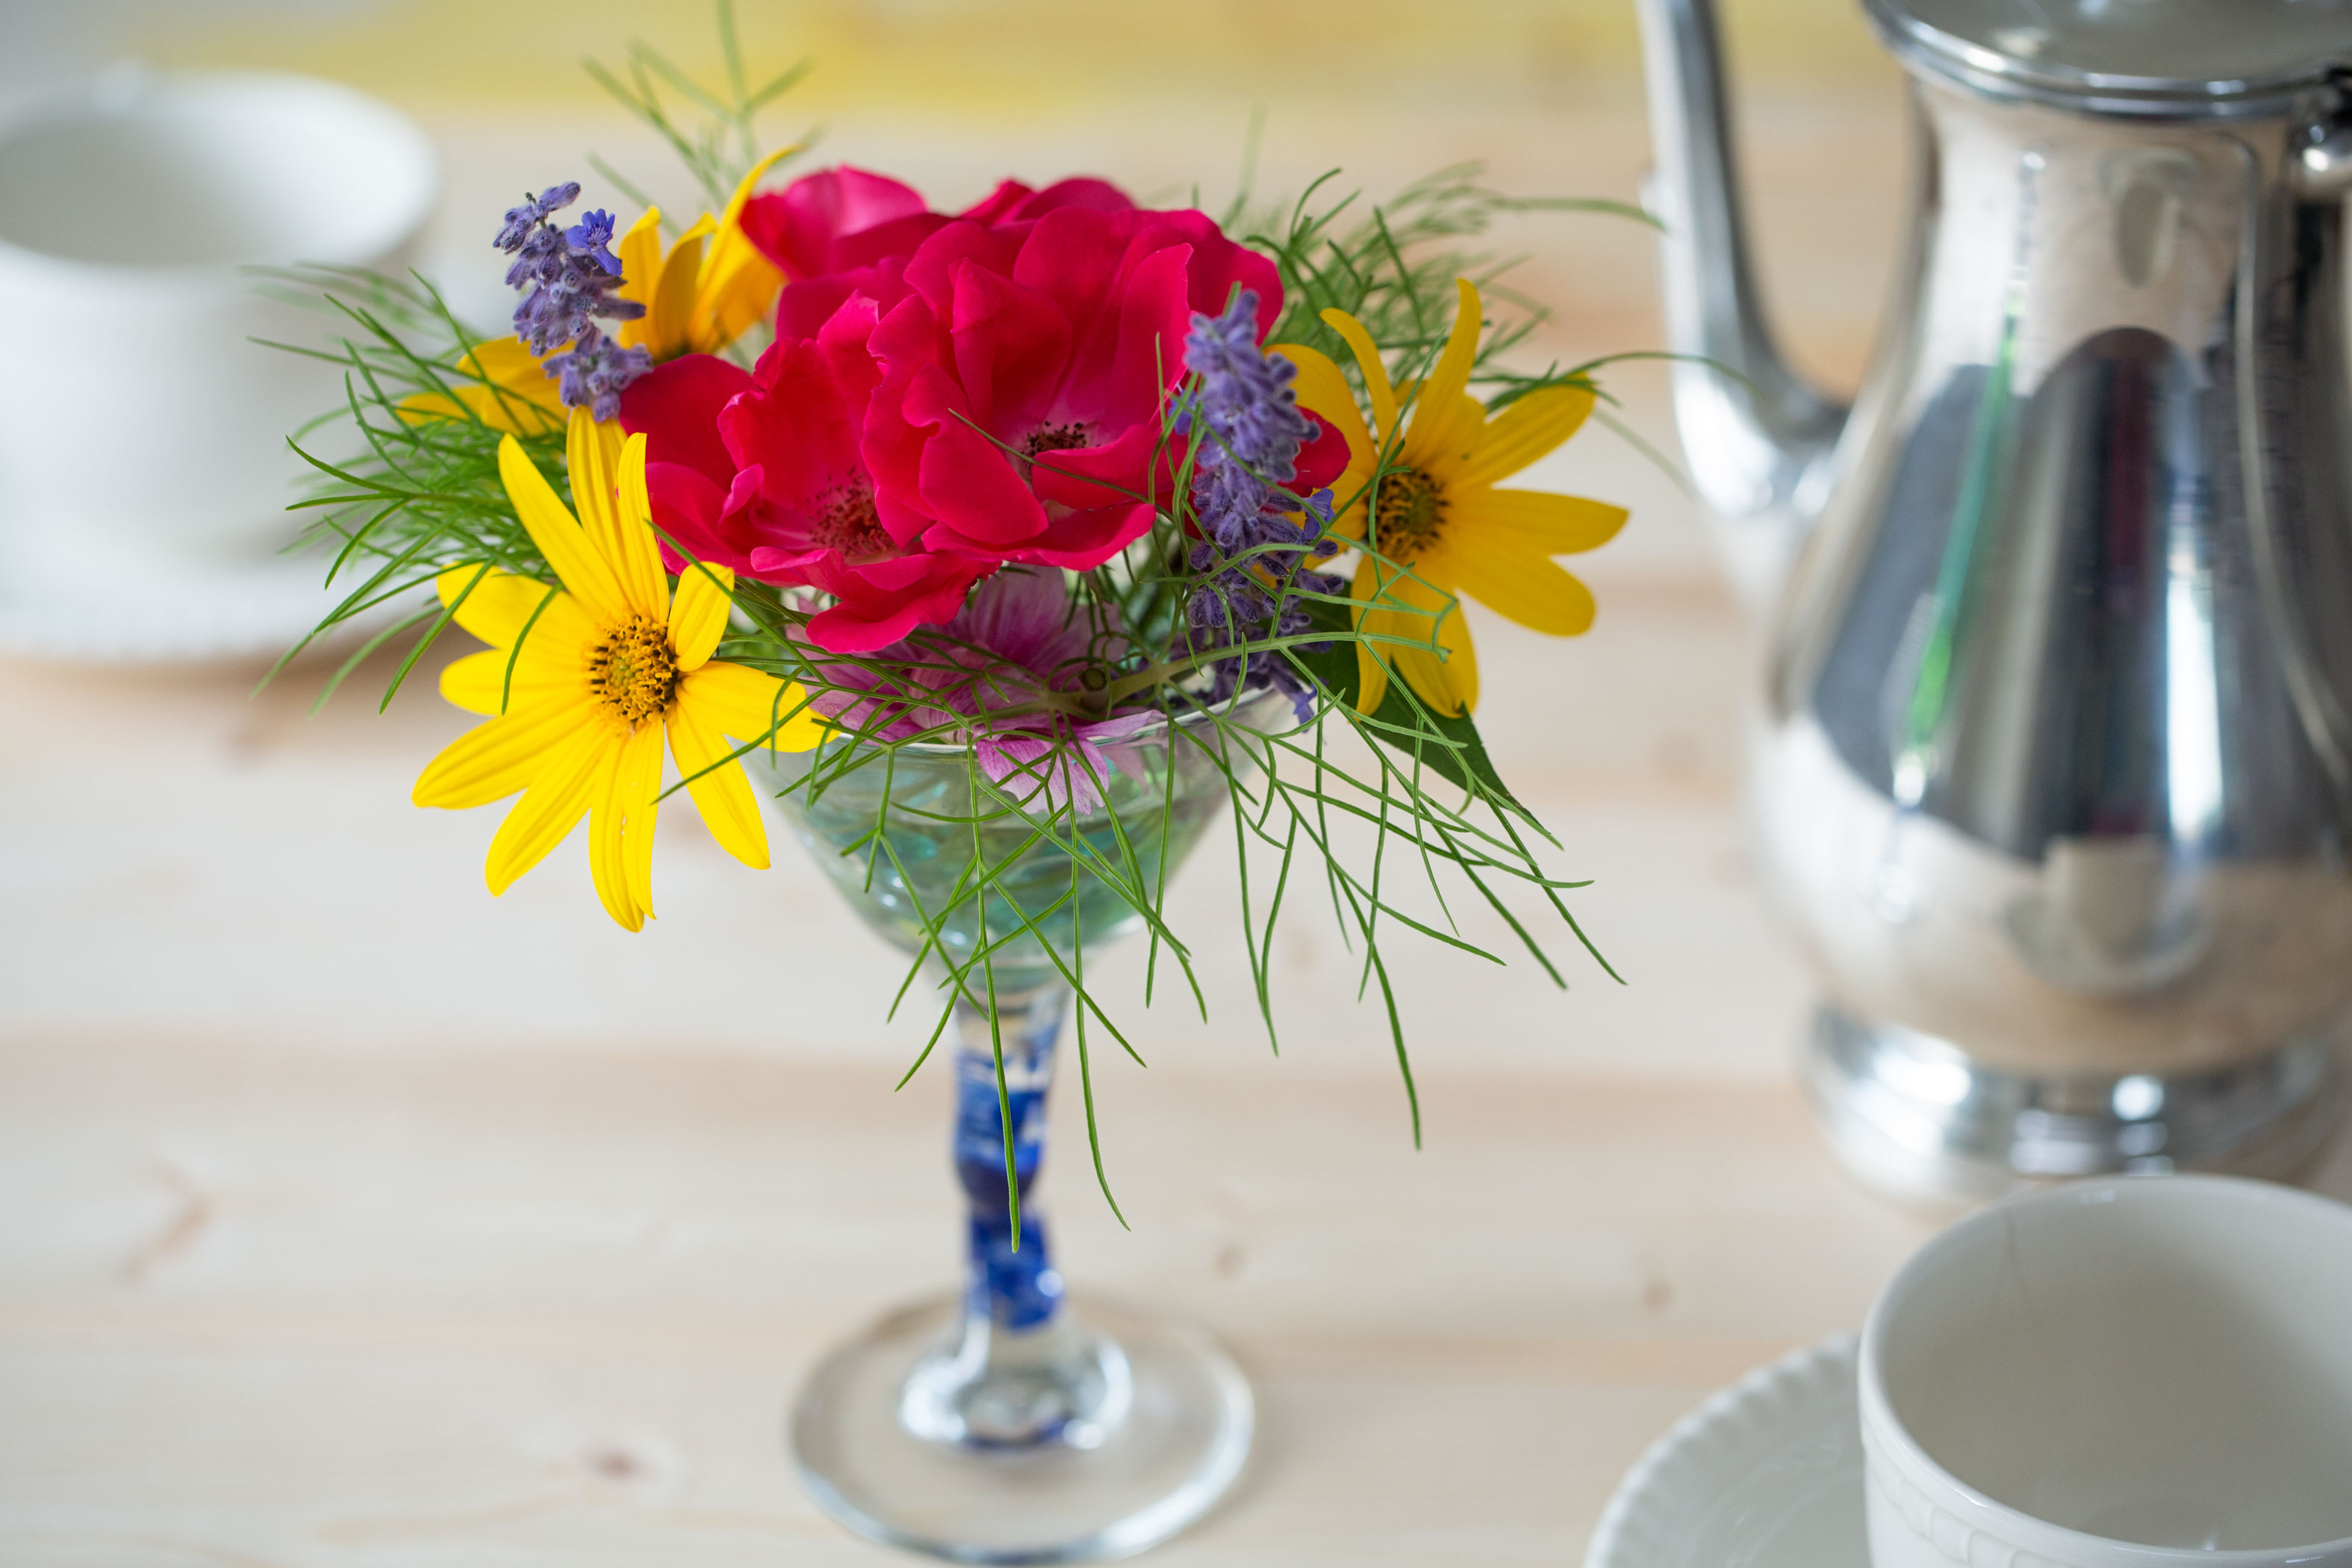 How To Make A Flower Arrangement In A Martini Glass Vase